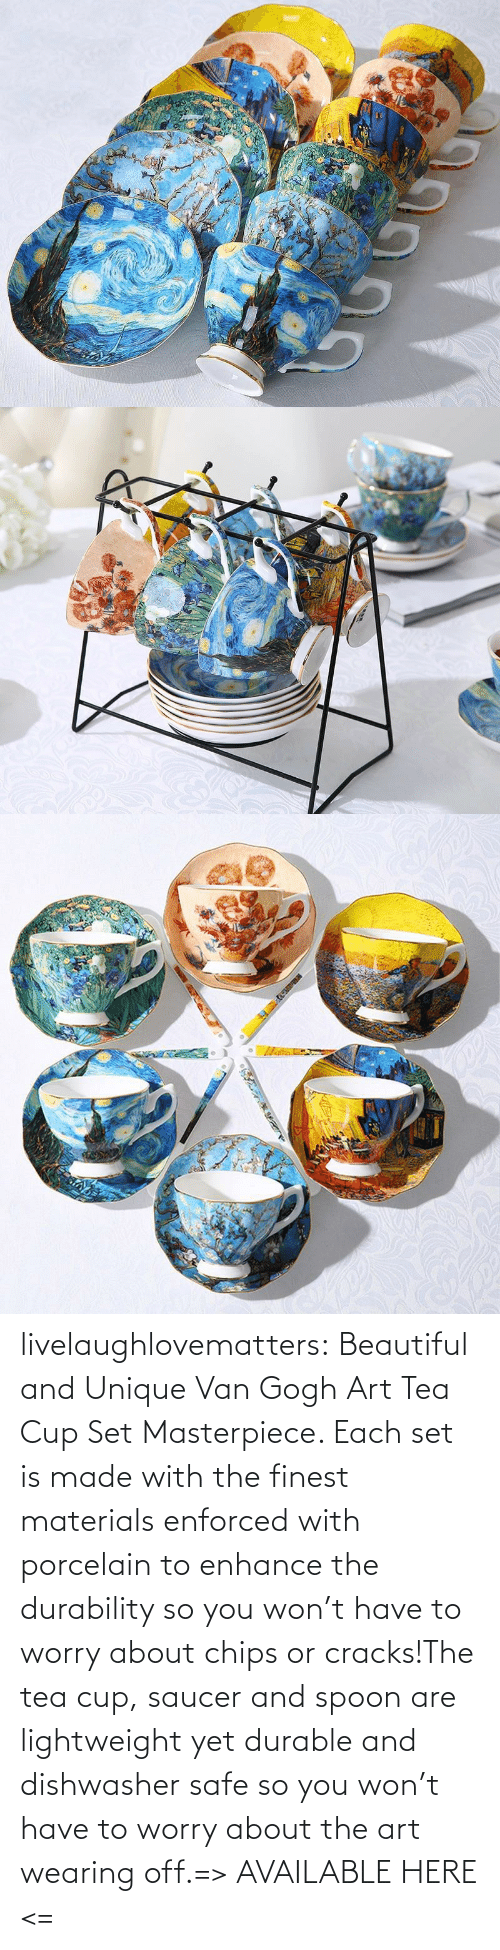 Finest: livelaughlovematters:  Beautiful and Unique Van Gogh Art Tea Cup Set Masterpiece. Each set is made with the finest materials enforced with porcelain to enhance the durability so you won't have to worry about chips or cracks!The tea cup, saucer and spoon are lightweight yet durable and dishwasher safe so you won't have to worry about the art wearing off.=> AVAILABLE HERE <=